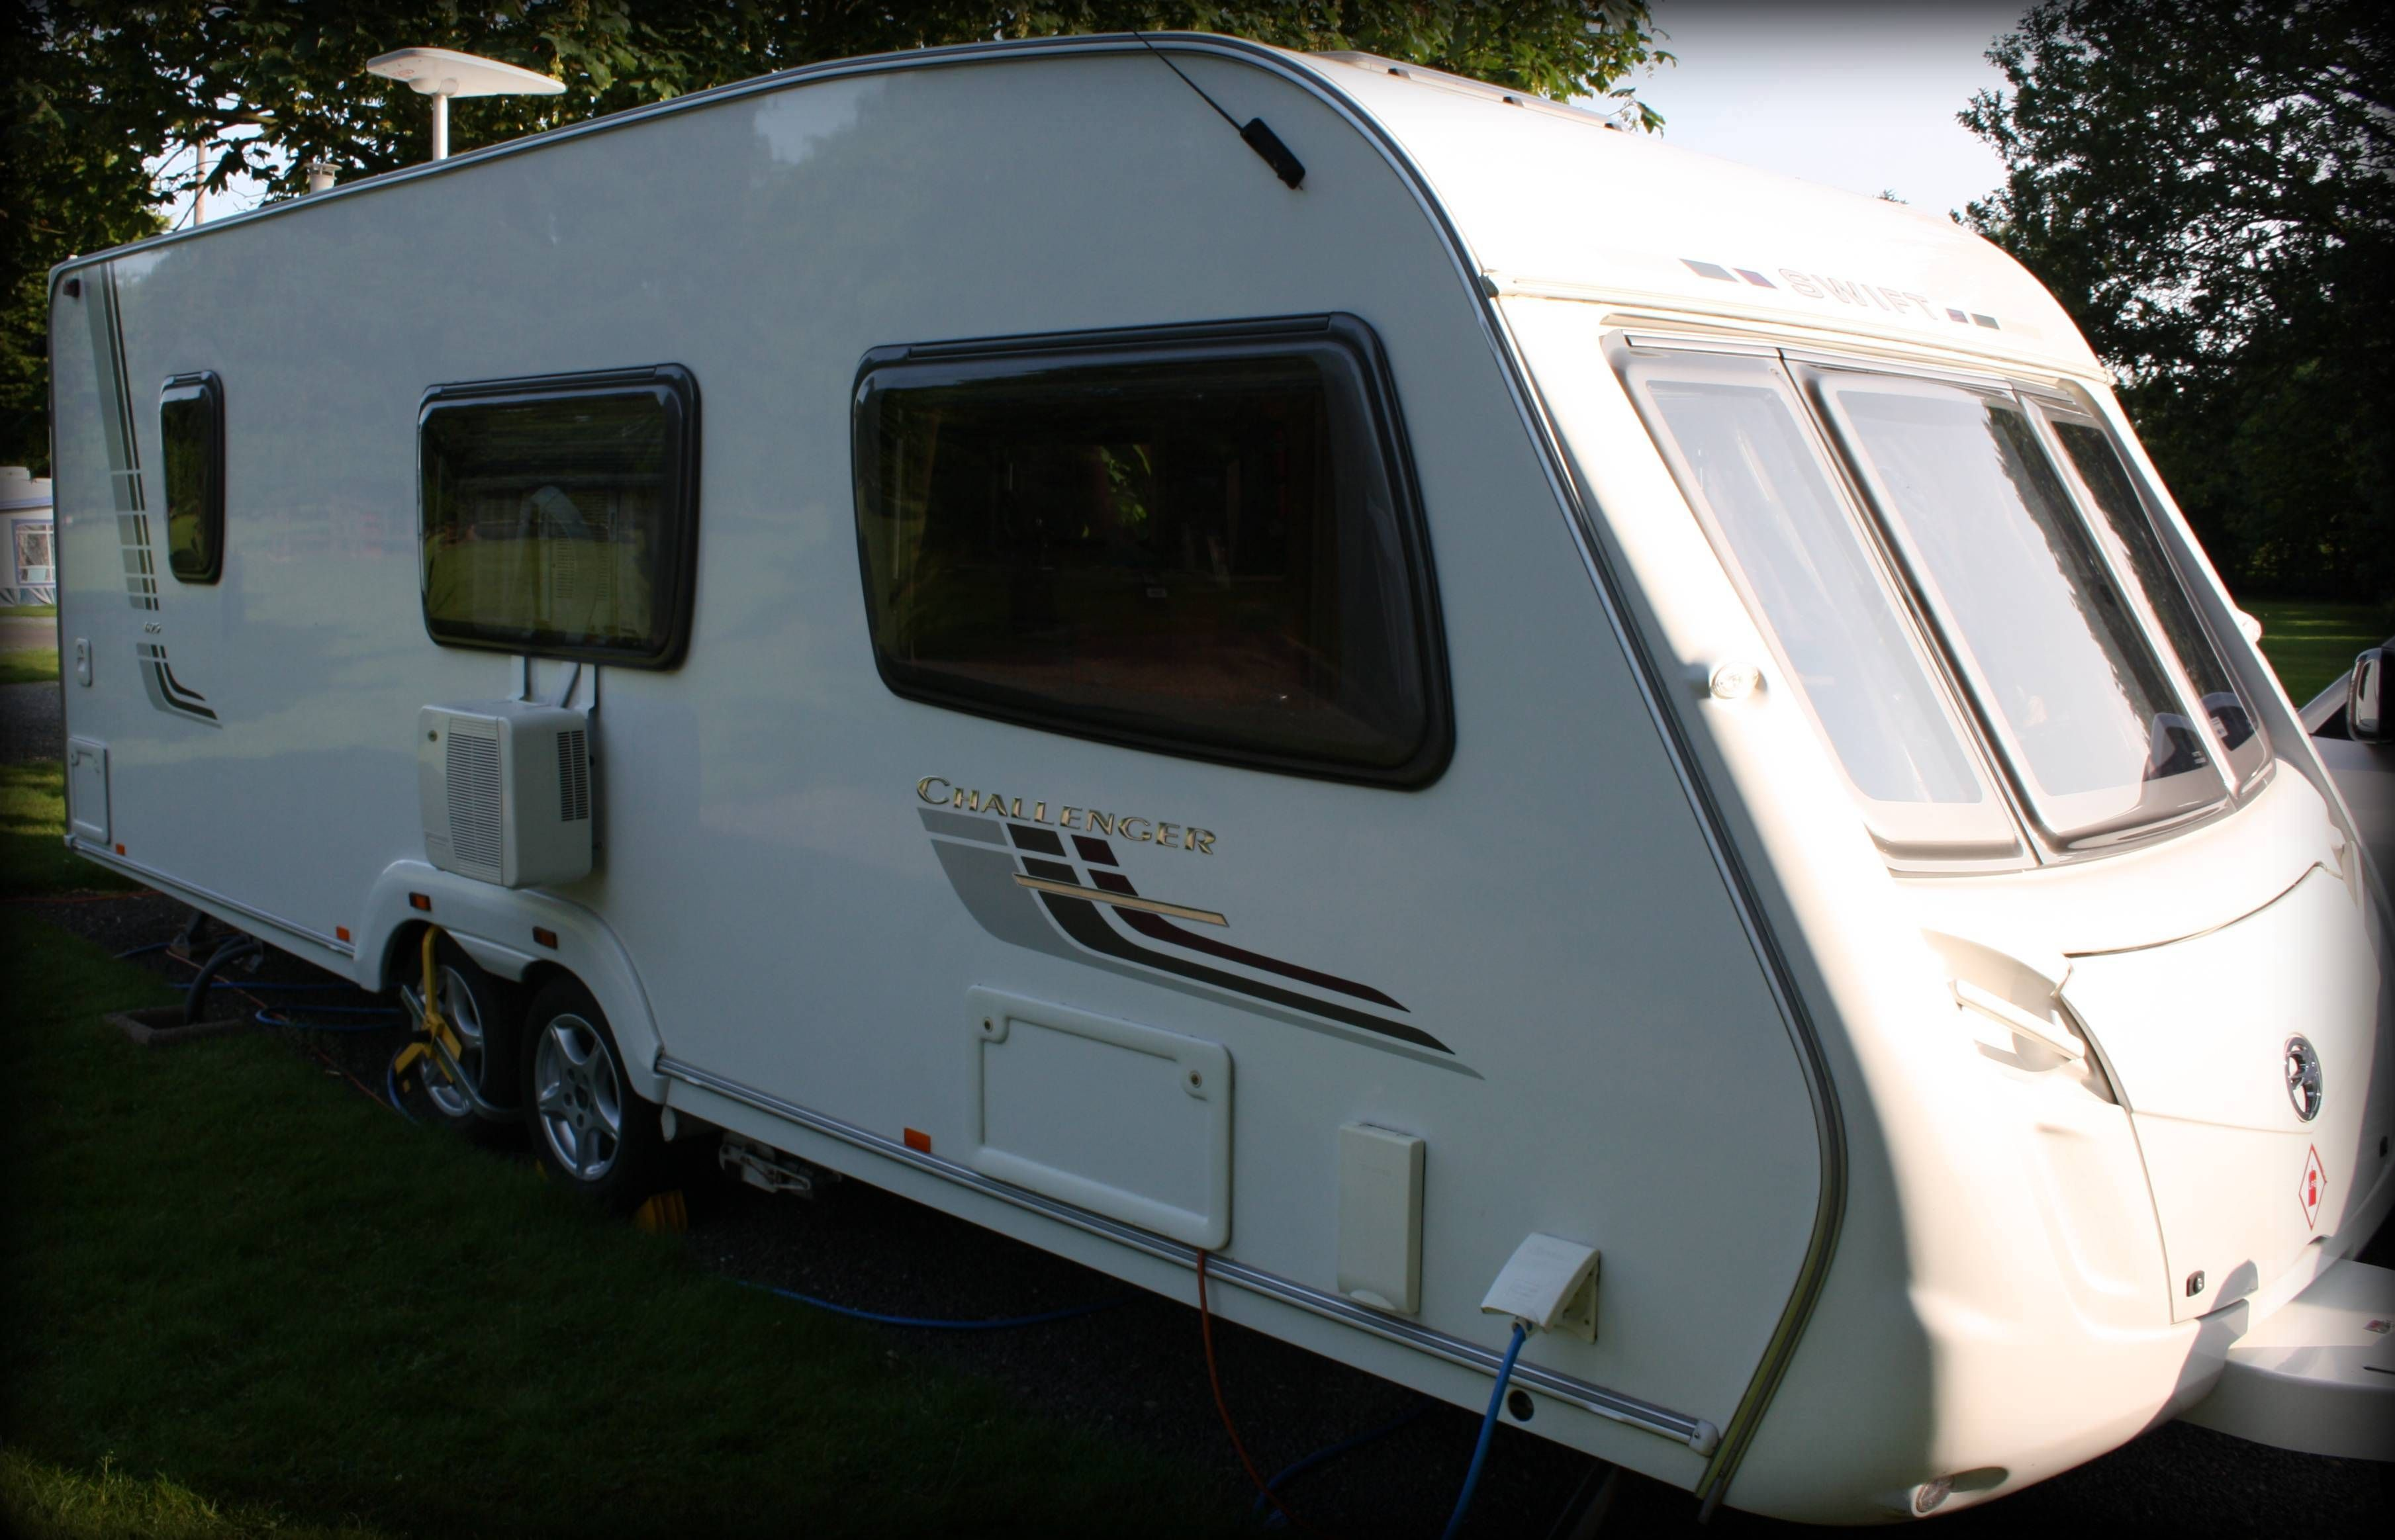 Portable air conditioning unit shown on a Swift Challenger caravan